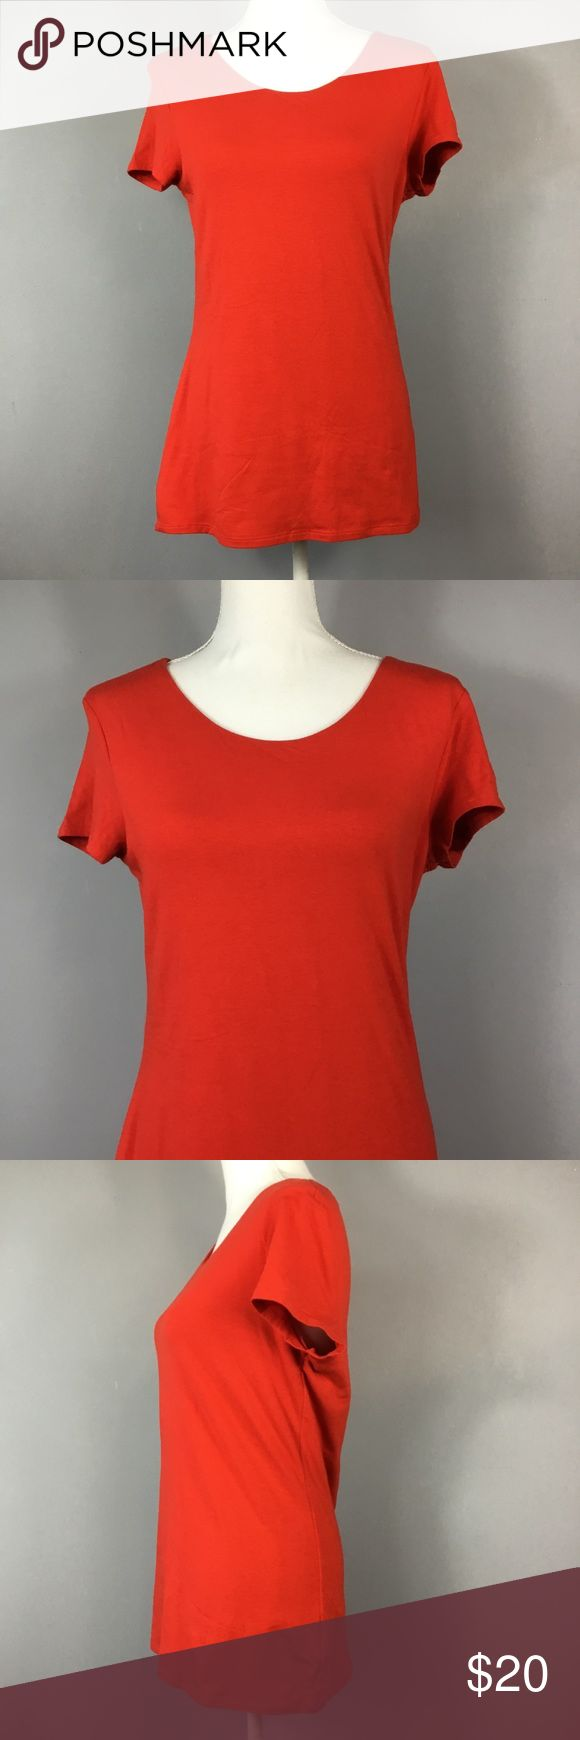 "New Express Red Short Sleeve Tunic Top Large Express Red Short Sleeve Tunic Top Womens Size Large Casual Zipper Back  Measurements are laying flat 	•	Underarm to underarm 18"" 	•	Length 26"" from shoulder to hem Please check out my other items for more sizes and styles! Express Tops Tunics"